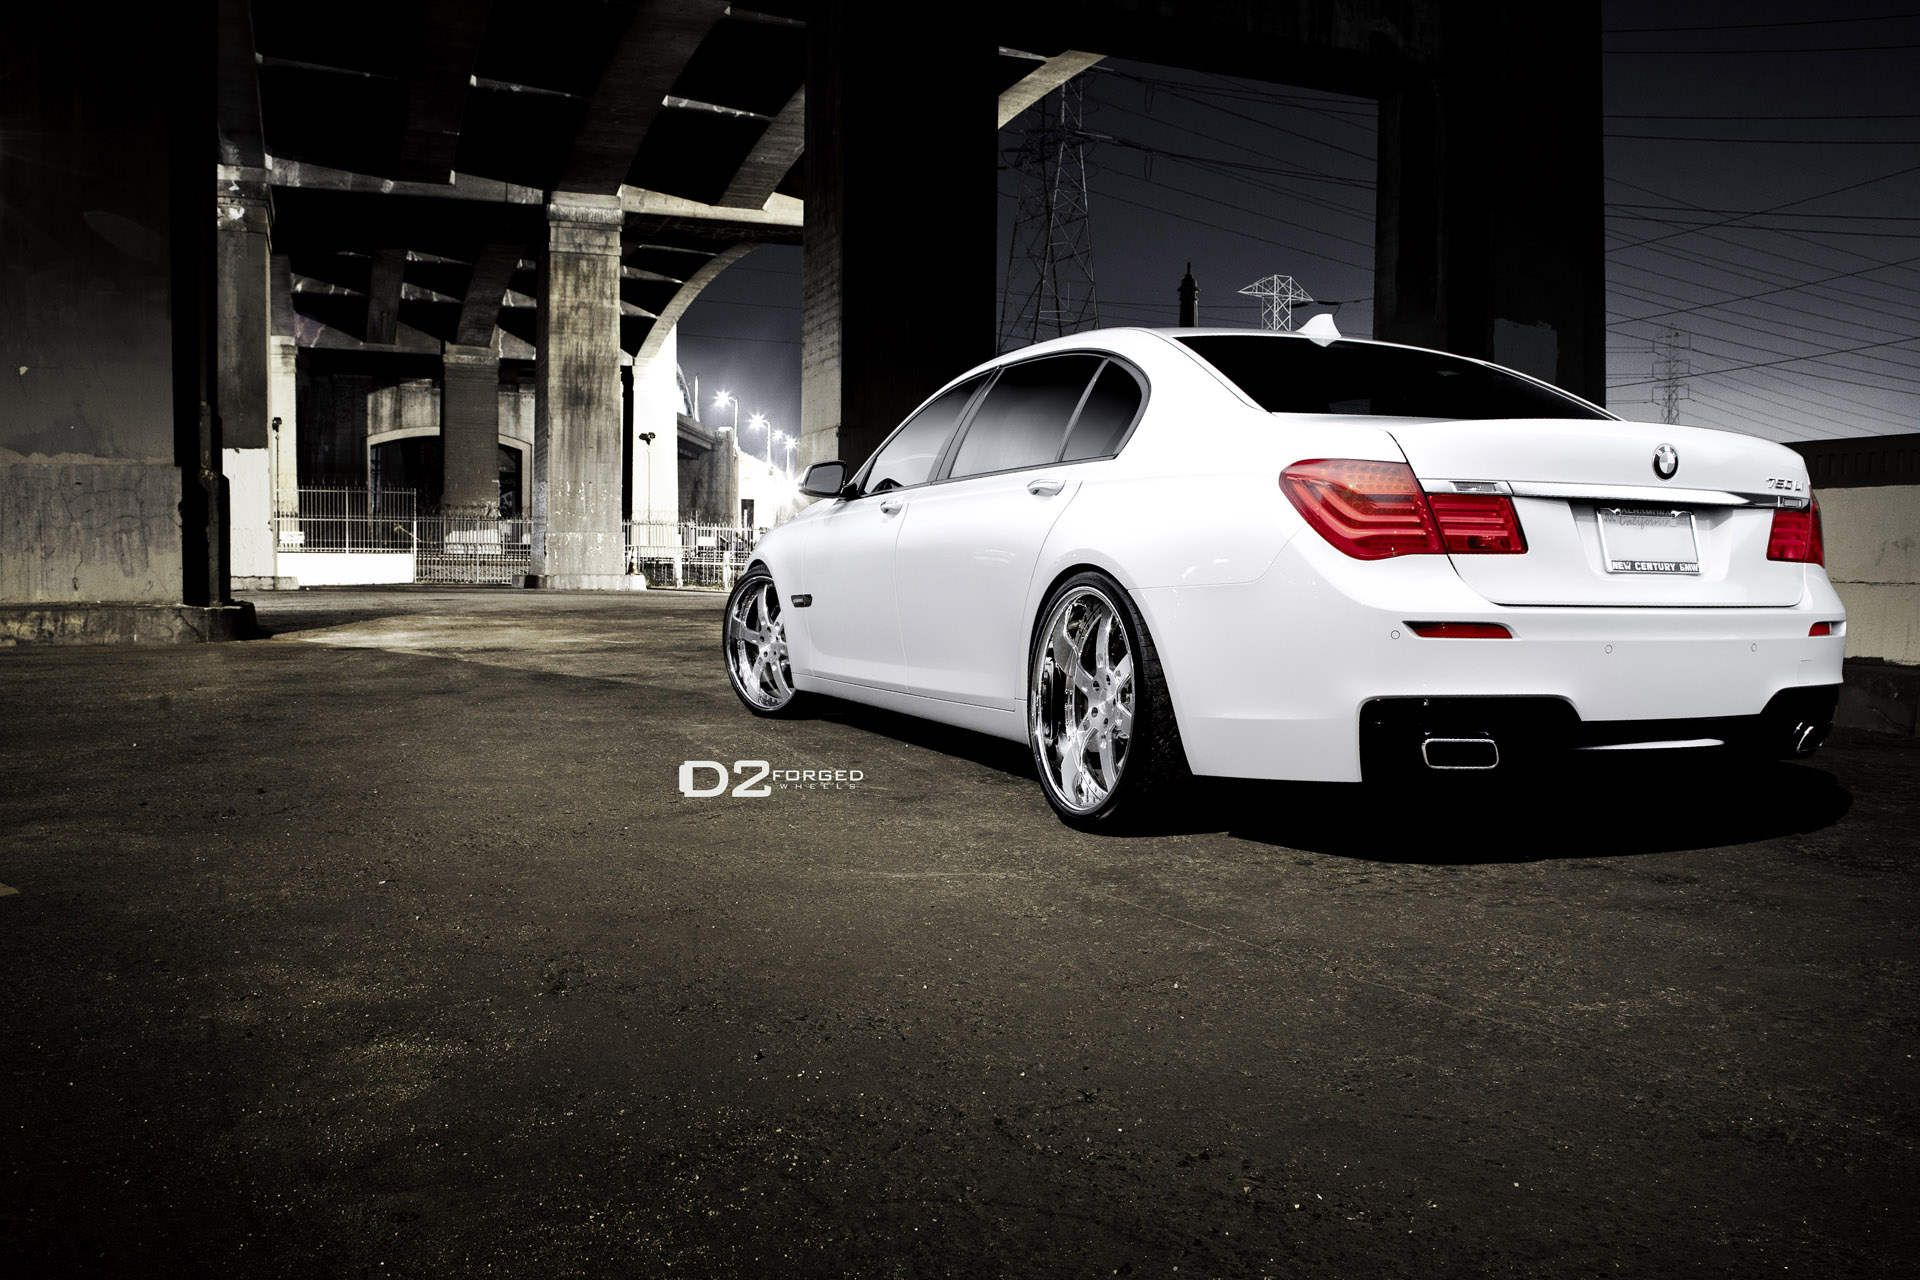 D2forged Bmw 750li Fms 09 Picture 73389